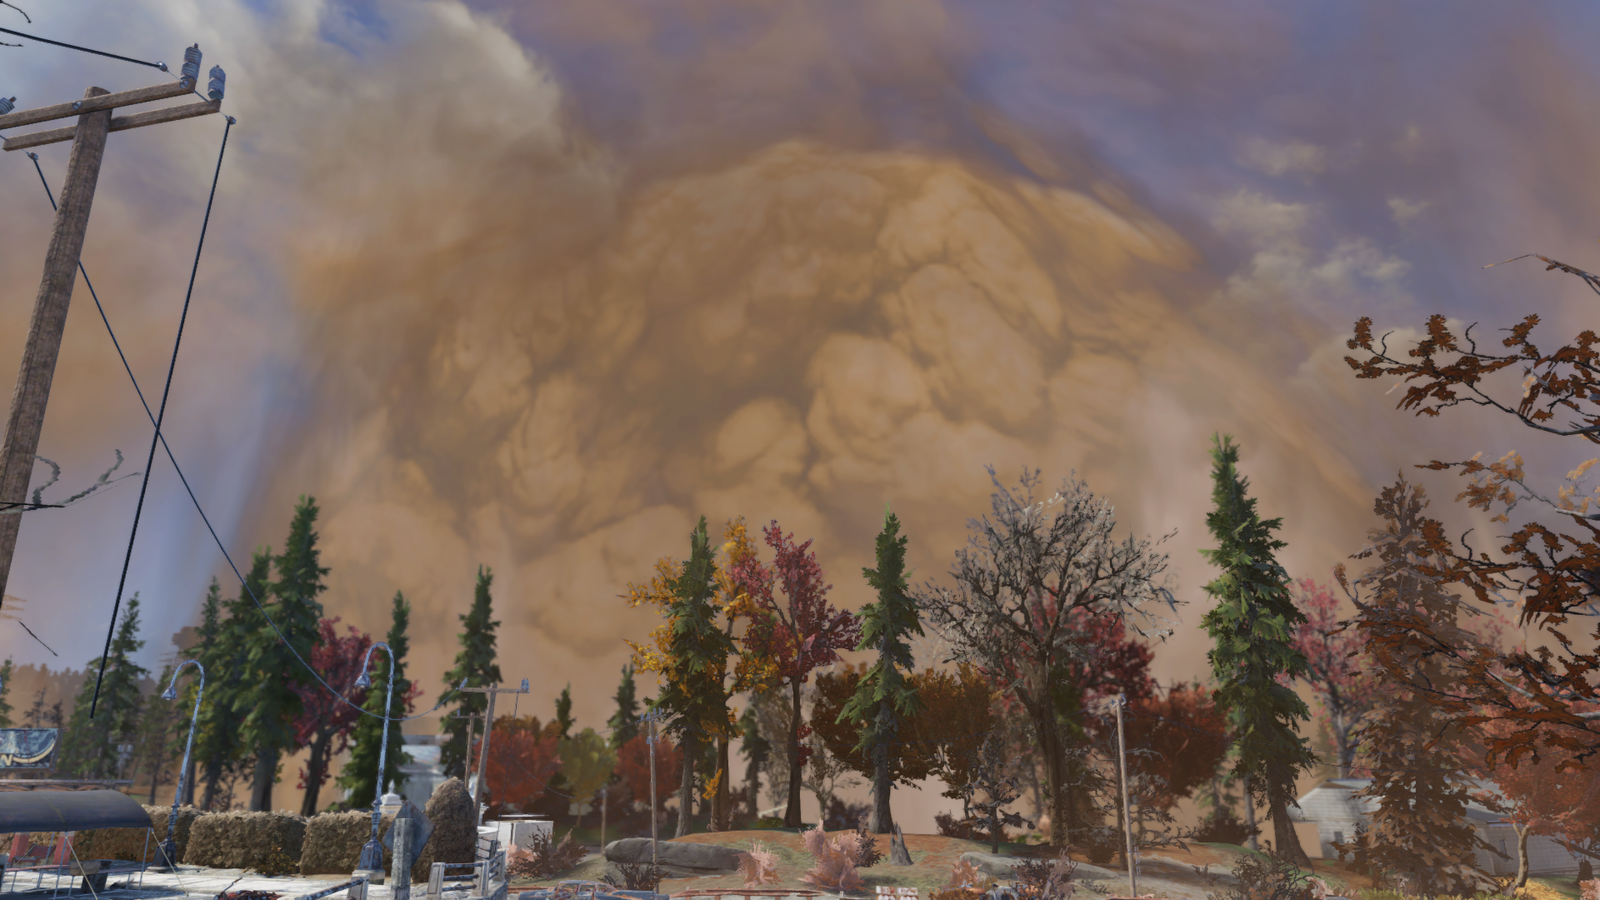 A nuclear explosion at the Whitespring Resort.